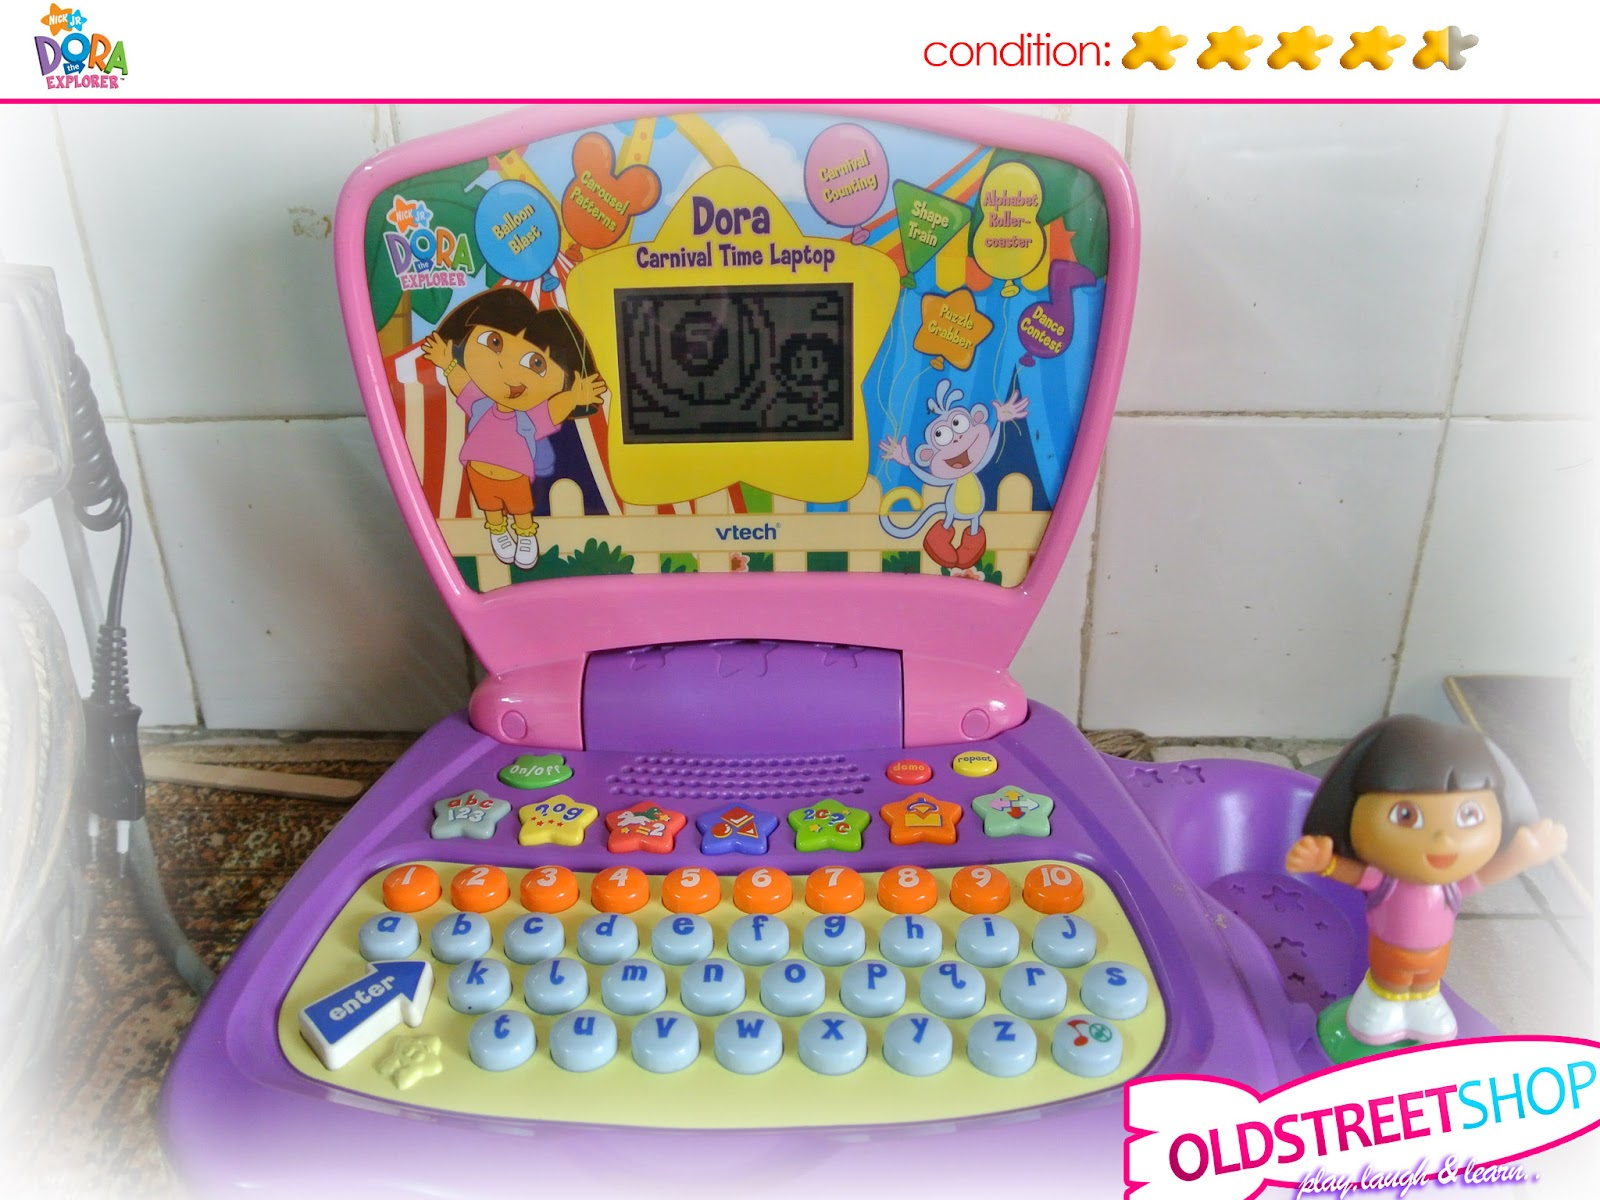 Oldstreetshop Vtech Dora The Explorer Carnival Time